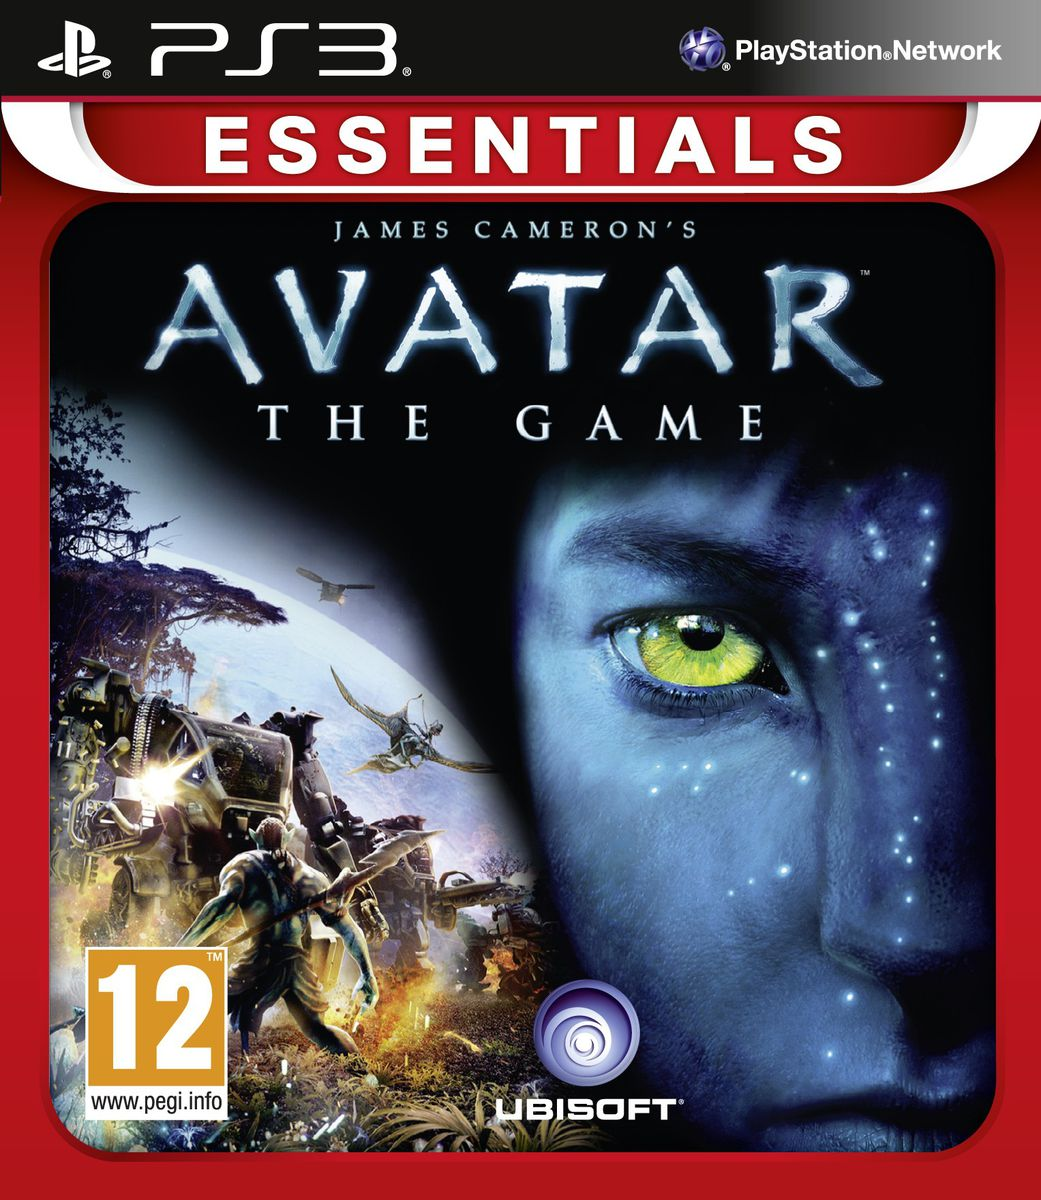 Avatar 3: James Cameron's Avatar:the Game (ps3 Essentials)